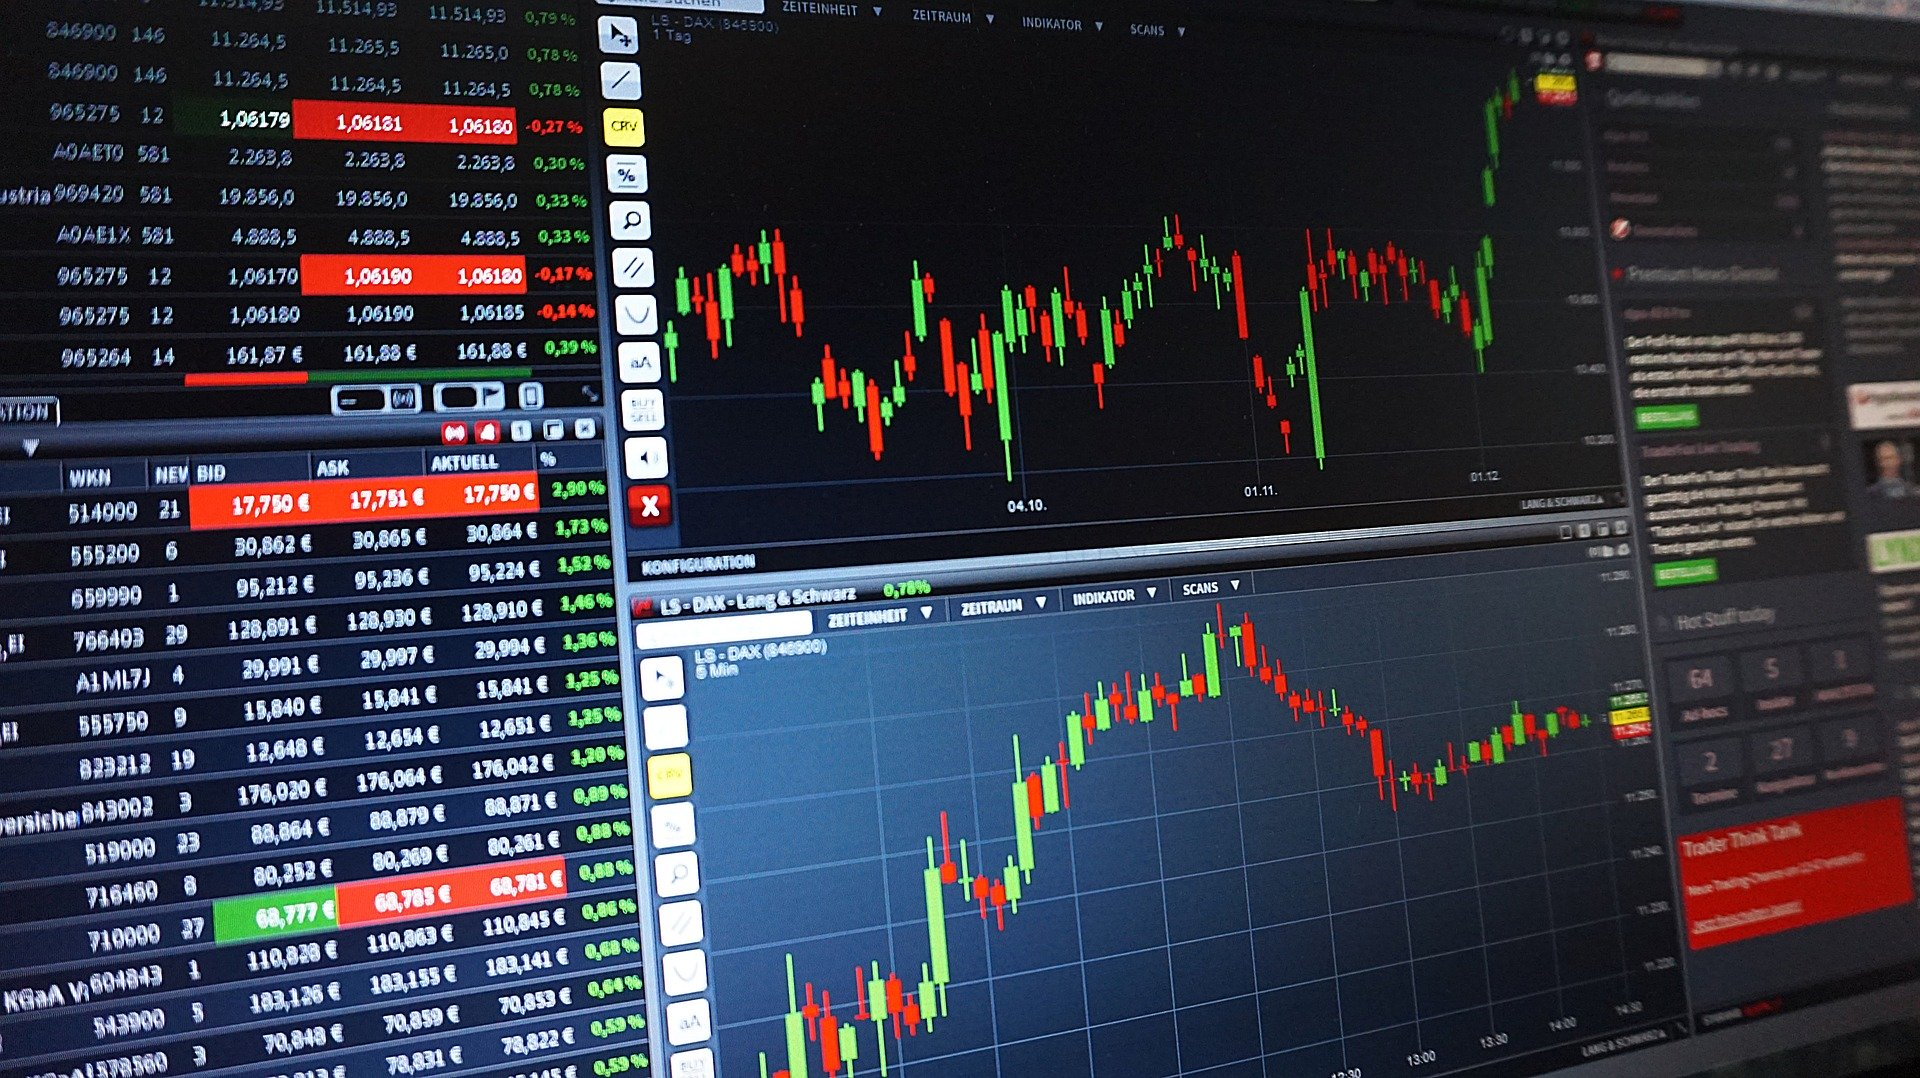 Short selling – What are the benefits and risks?